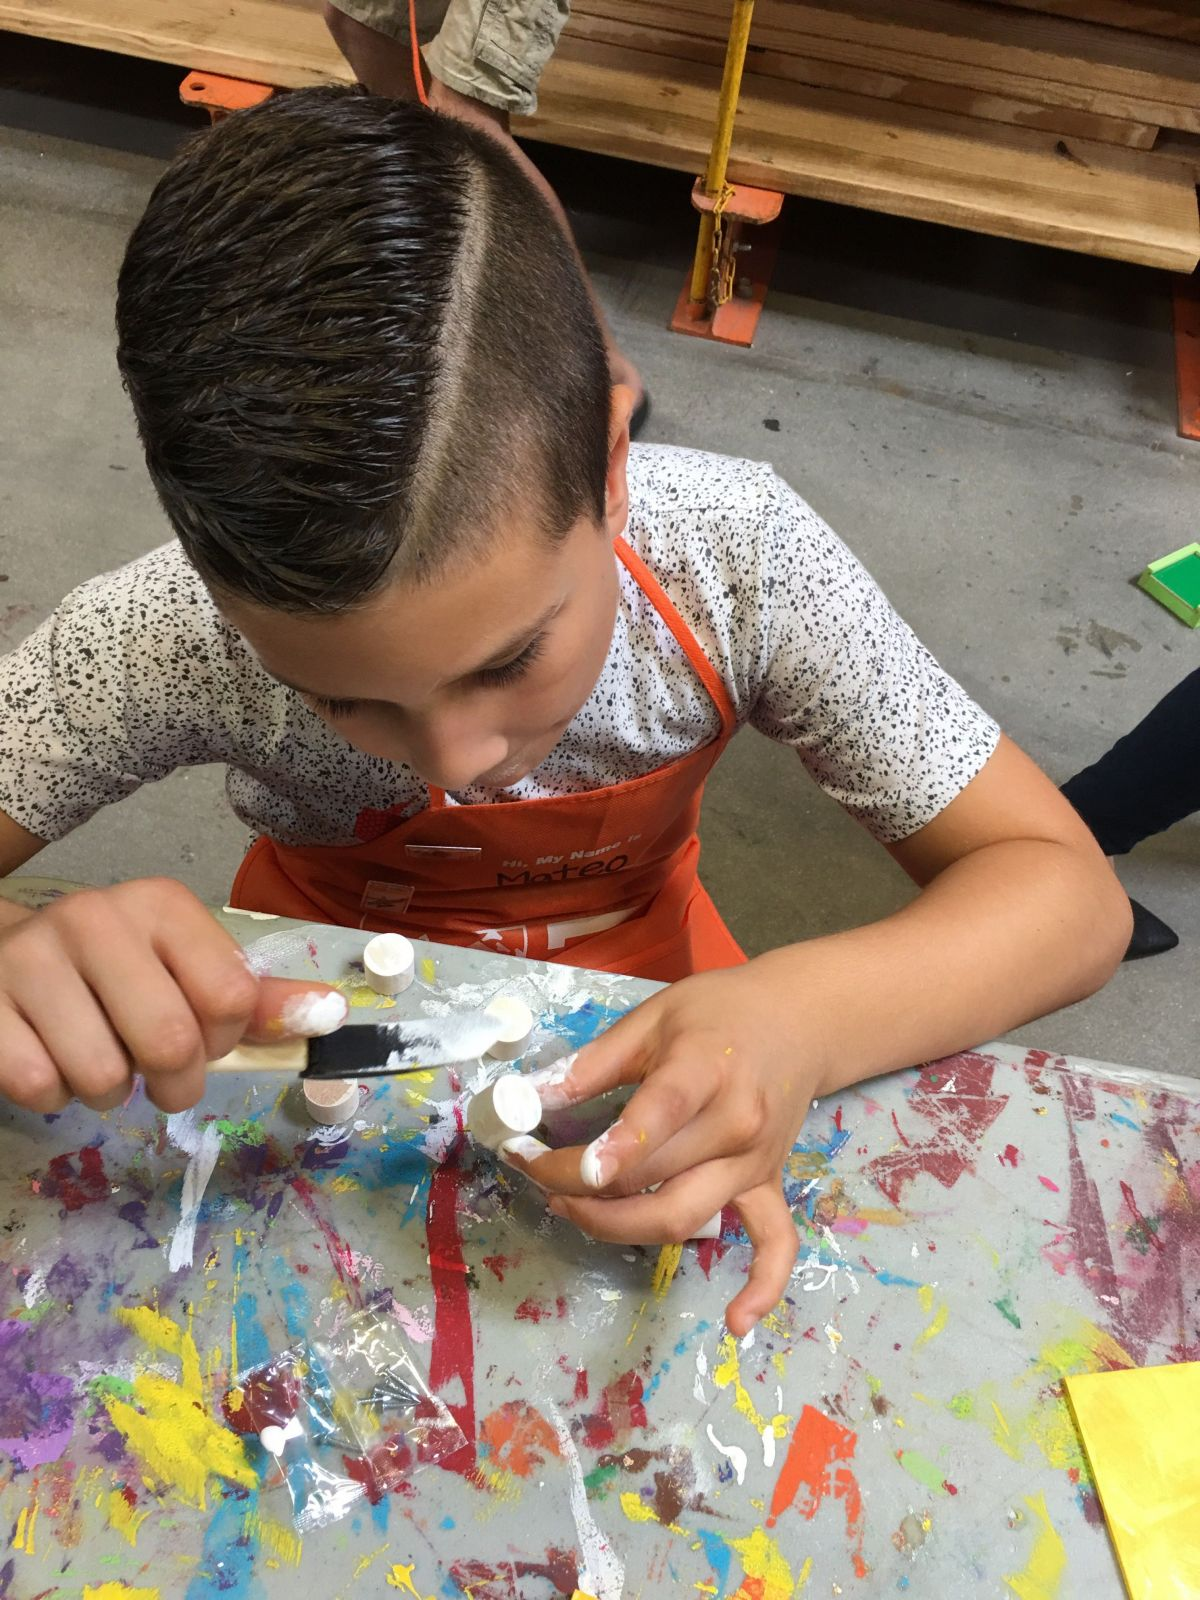 Photo of a young boy at school doing arts and crafts, focused